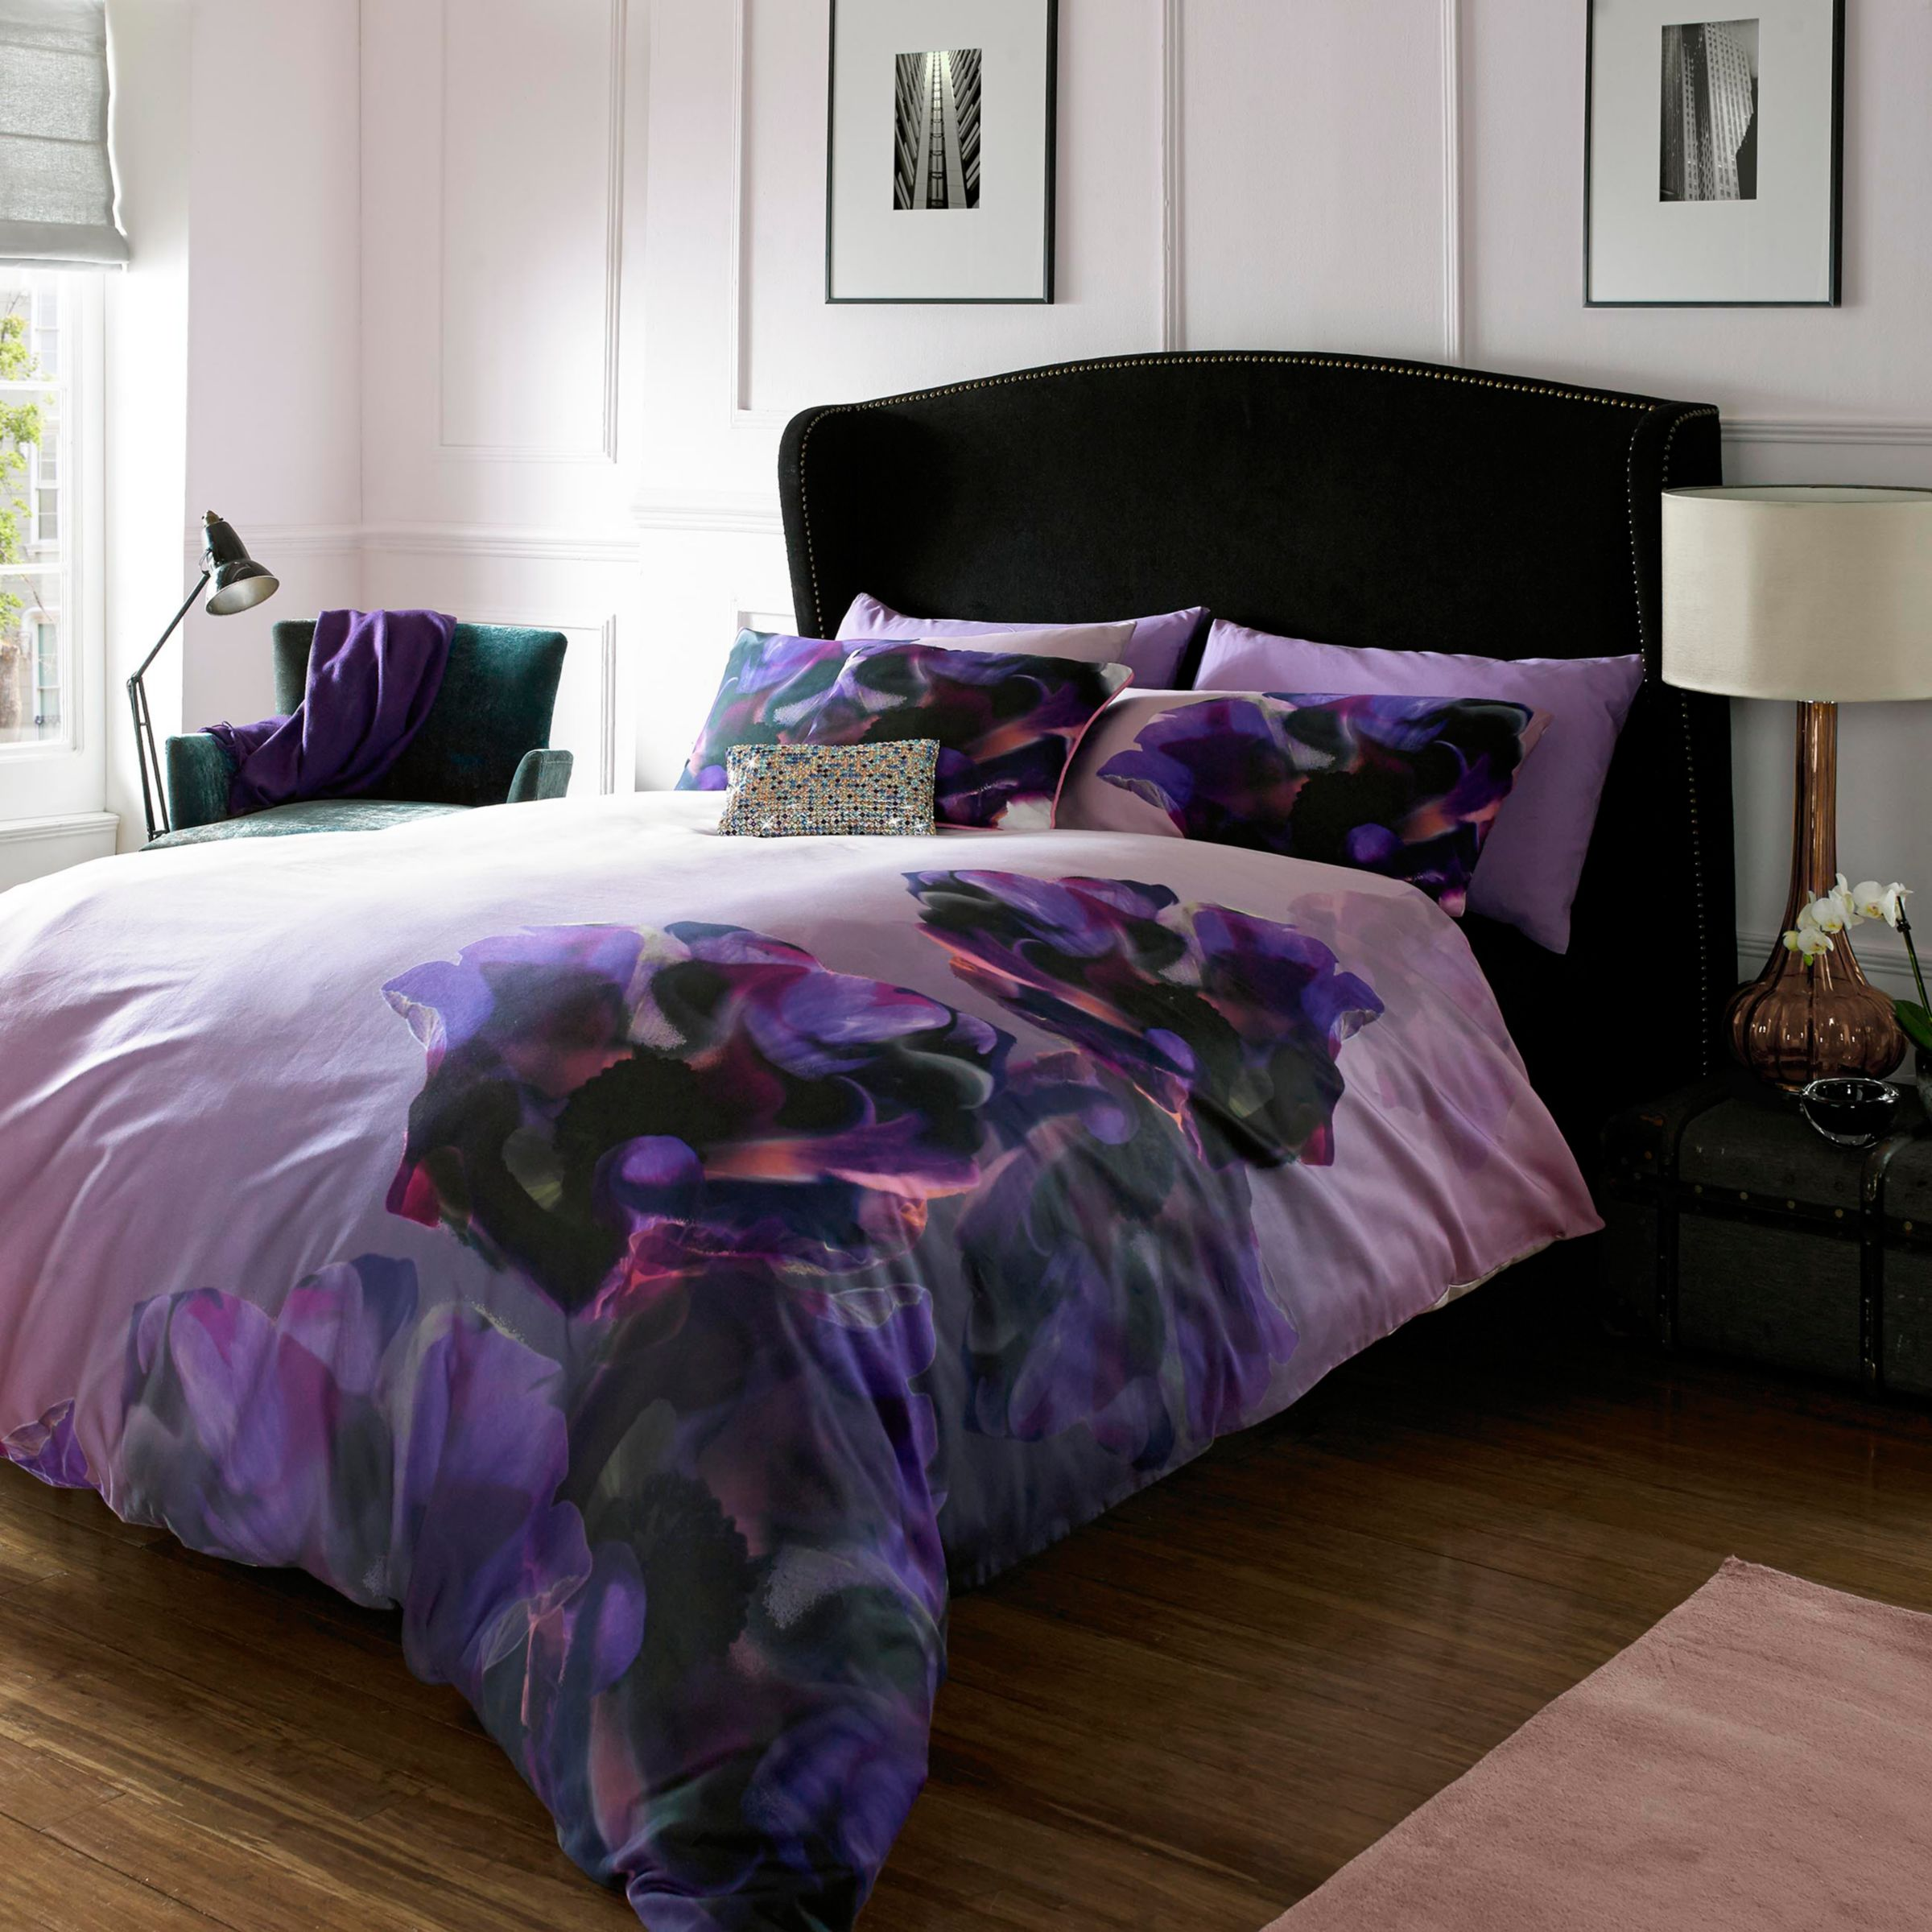 Buy Ted Baker Cosmic Bedding, Purple John Lewis